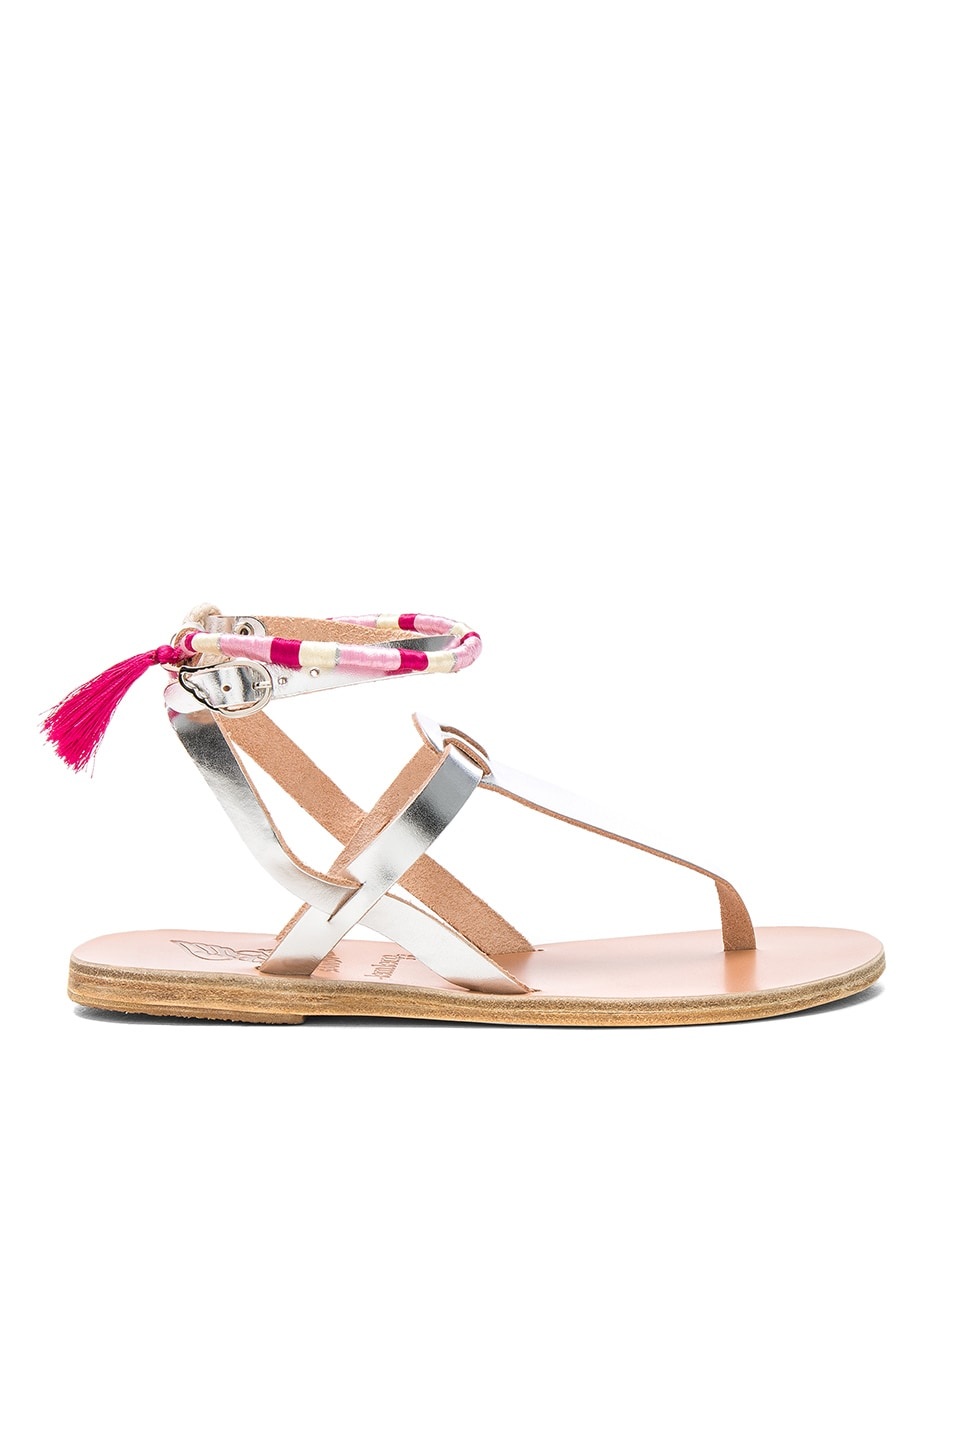 Image 1 of Ancient Greek Sandals x Lemlem Metallic Leather Estia Wrap Sandals in Silver & Pink